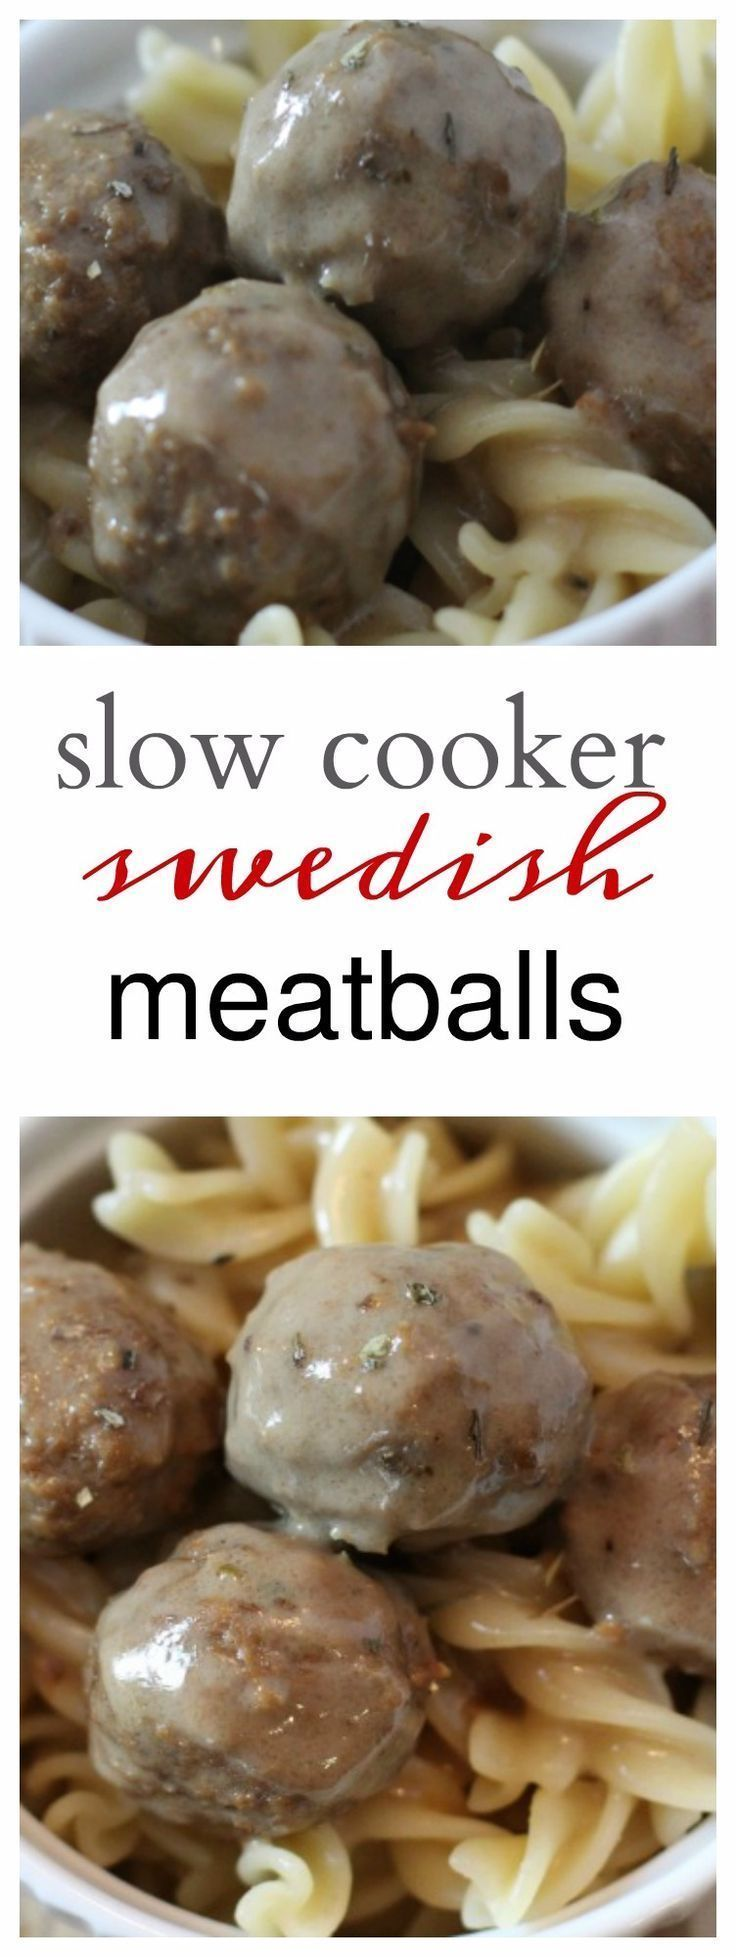 A simple slow cooker meal this fall for your family! Everyone loves Swedish Meatballs and this slow cooker version is easy and delicious! You're family will be begging you to make it every week!